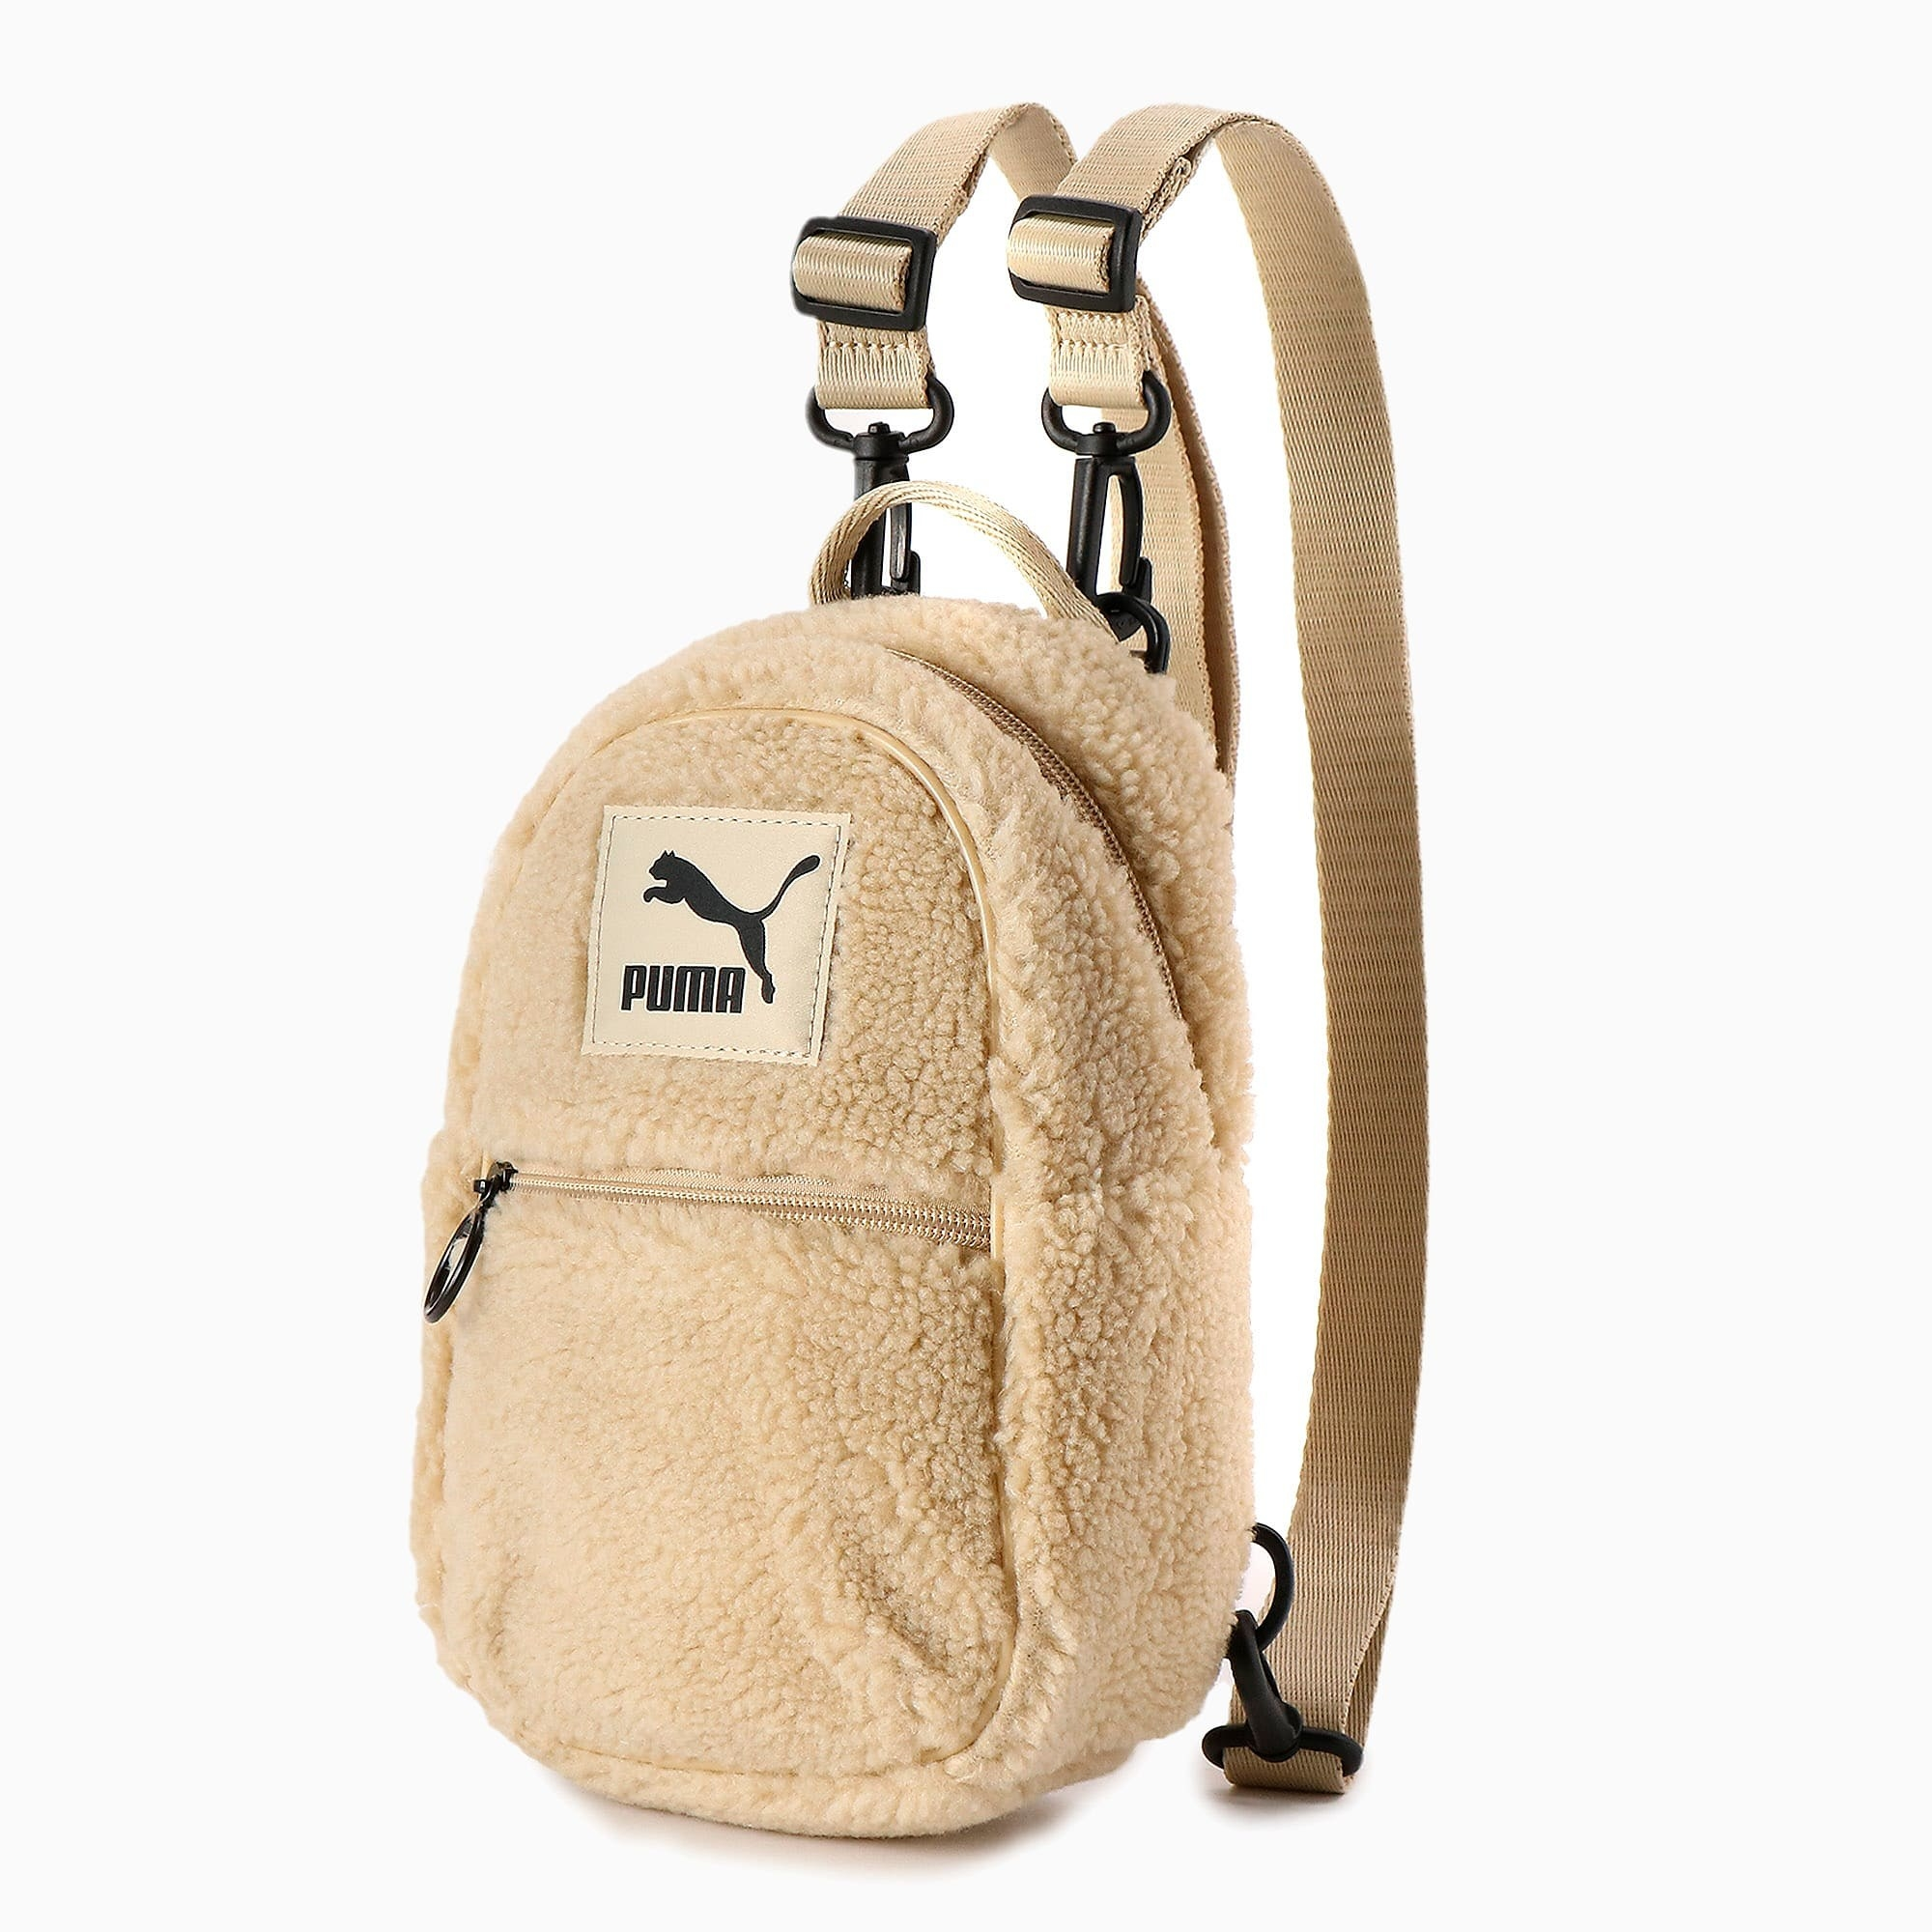 The small beige oval-shaped backpack with a front zippered pocket, top handle, and two straps with clips on them